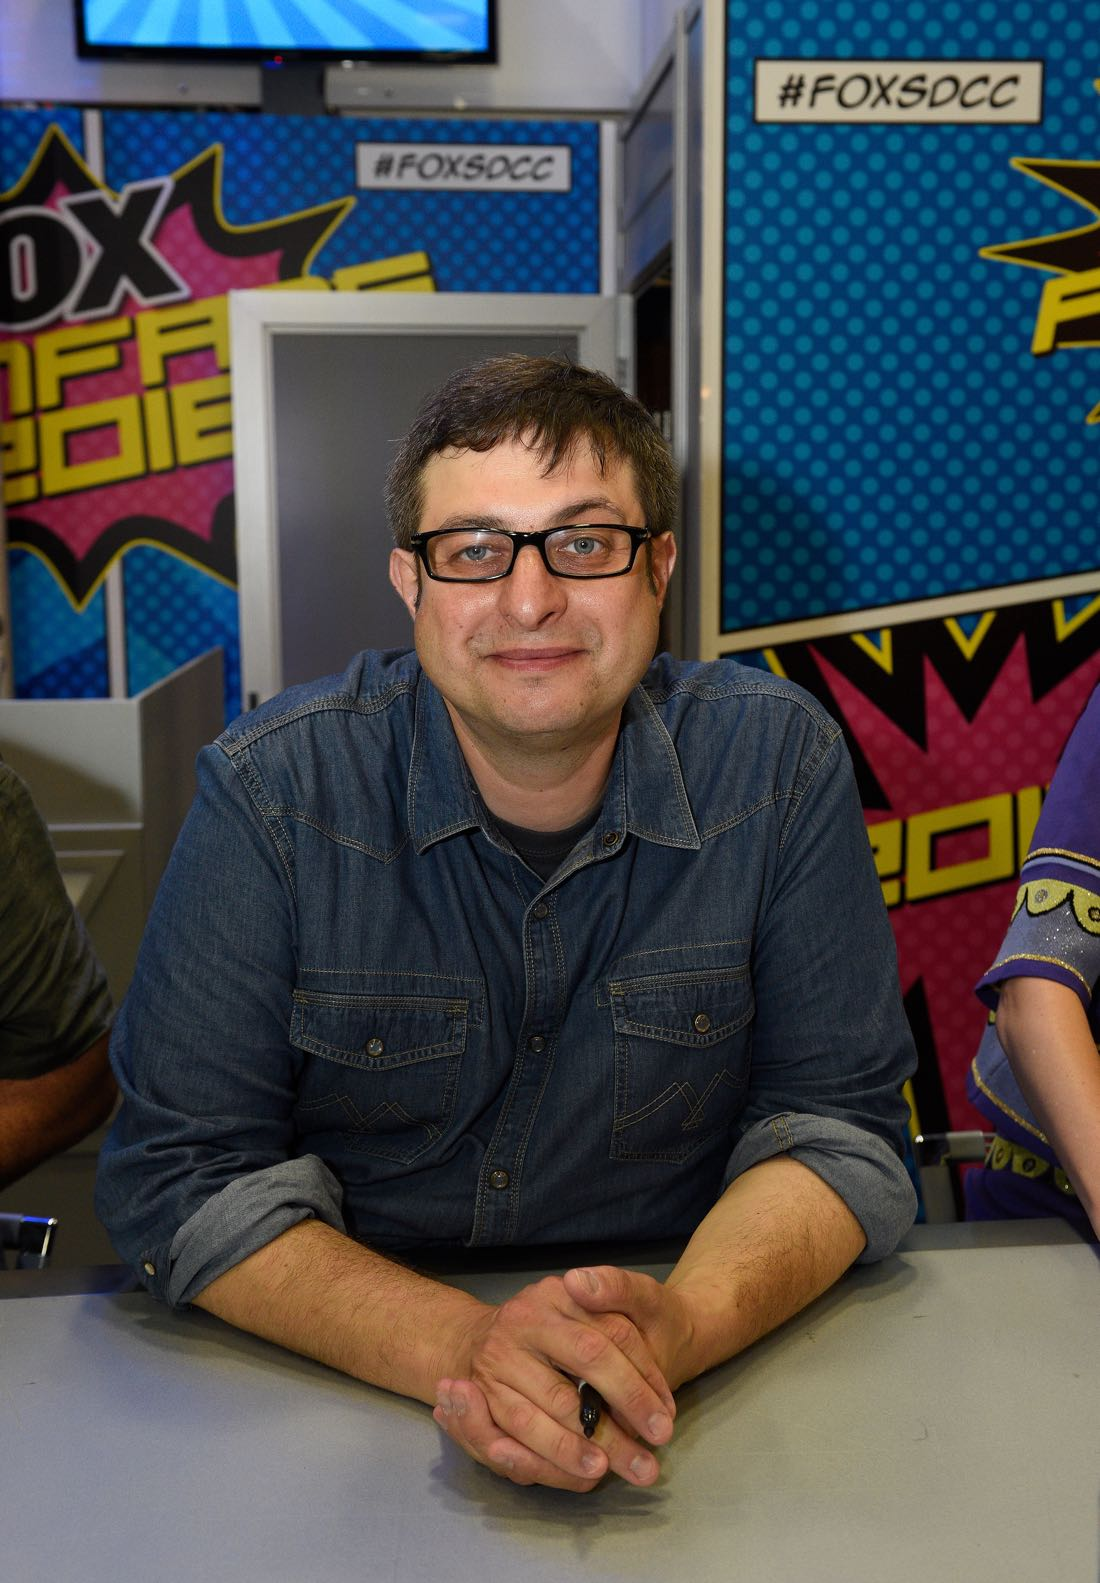 FOX FANFARE AT SAN DIEGO COMIC-CON © 2016: BOB'S BURGERS cast member Eugene Mirman during BOB'S BURGERS booth signing on Friday, July 22 at the FOX FANFARE AT SAN DIEGO COMIC-CON © 2016. CR: Alan Hess/FOX © 2016 FOX BROADCASTING